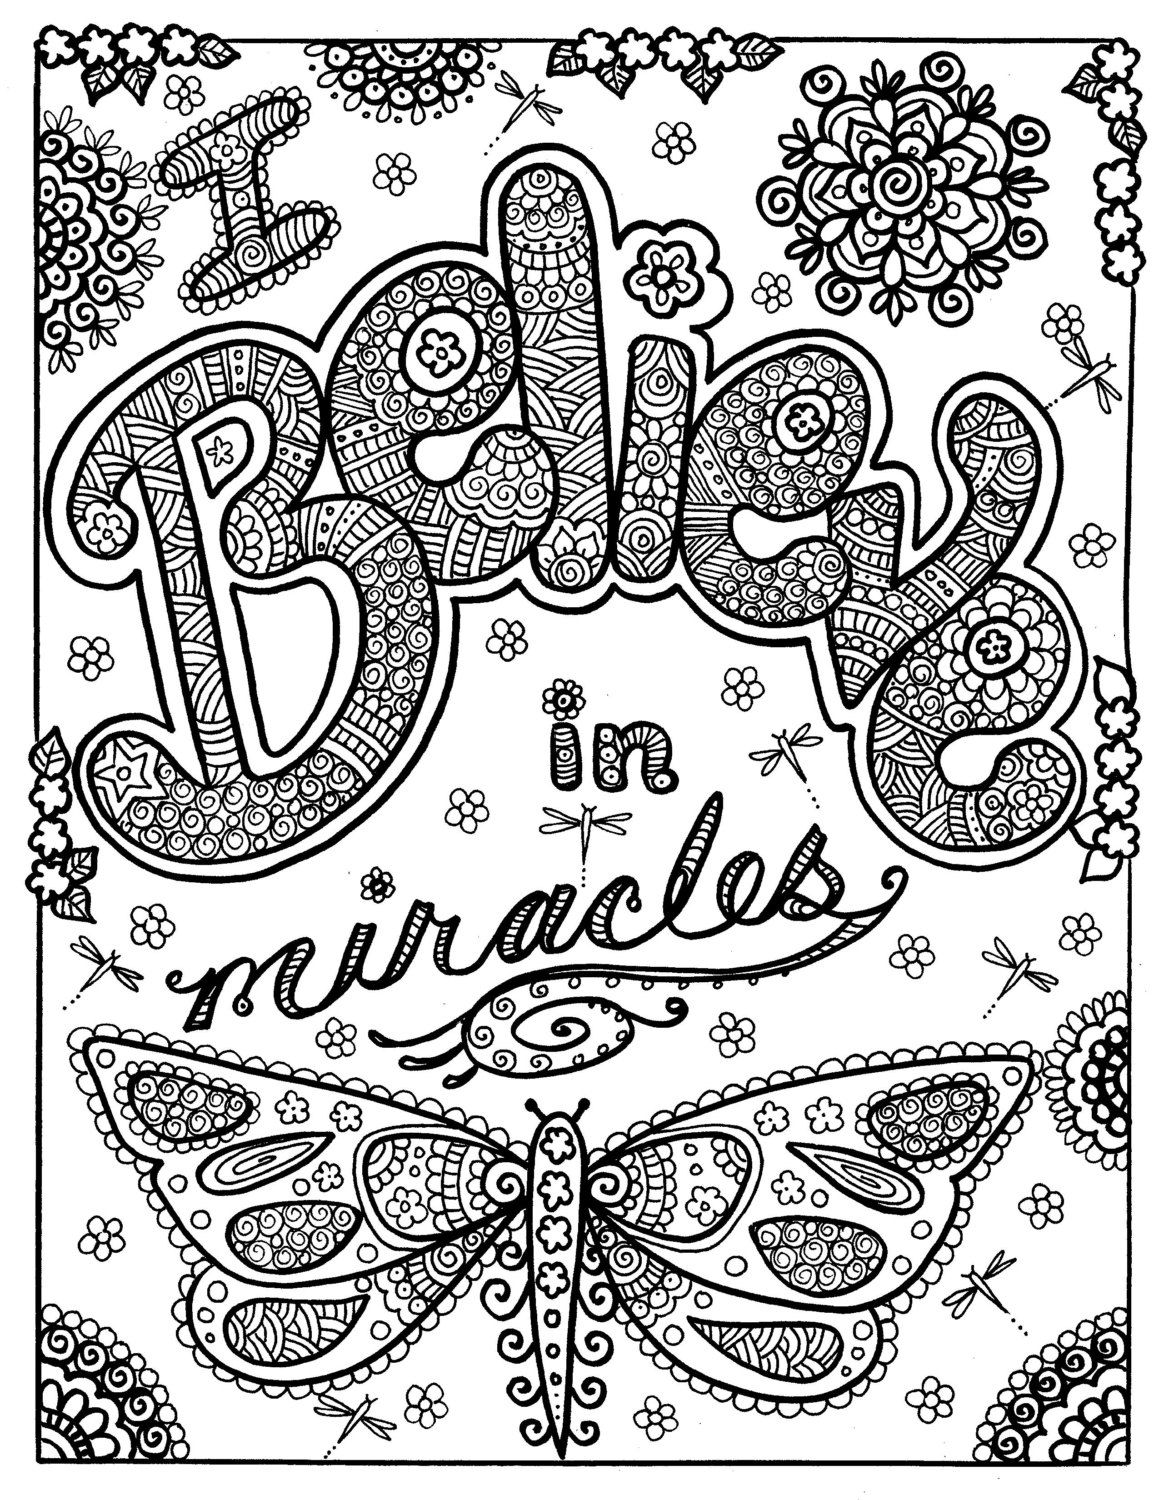 Instant Download Believe In Miracles Coloring Page You Be The Artist Quote Coloring Pages Butterfly Coloring Page Insect Coloring Pages